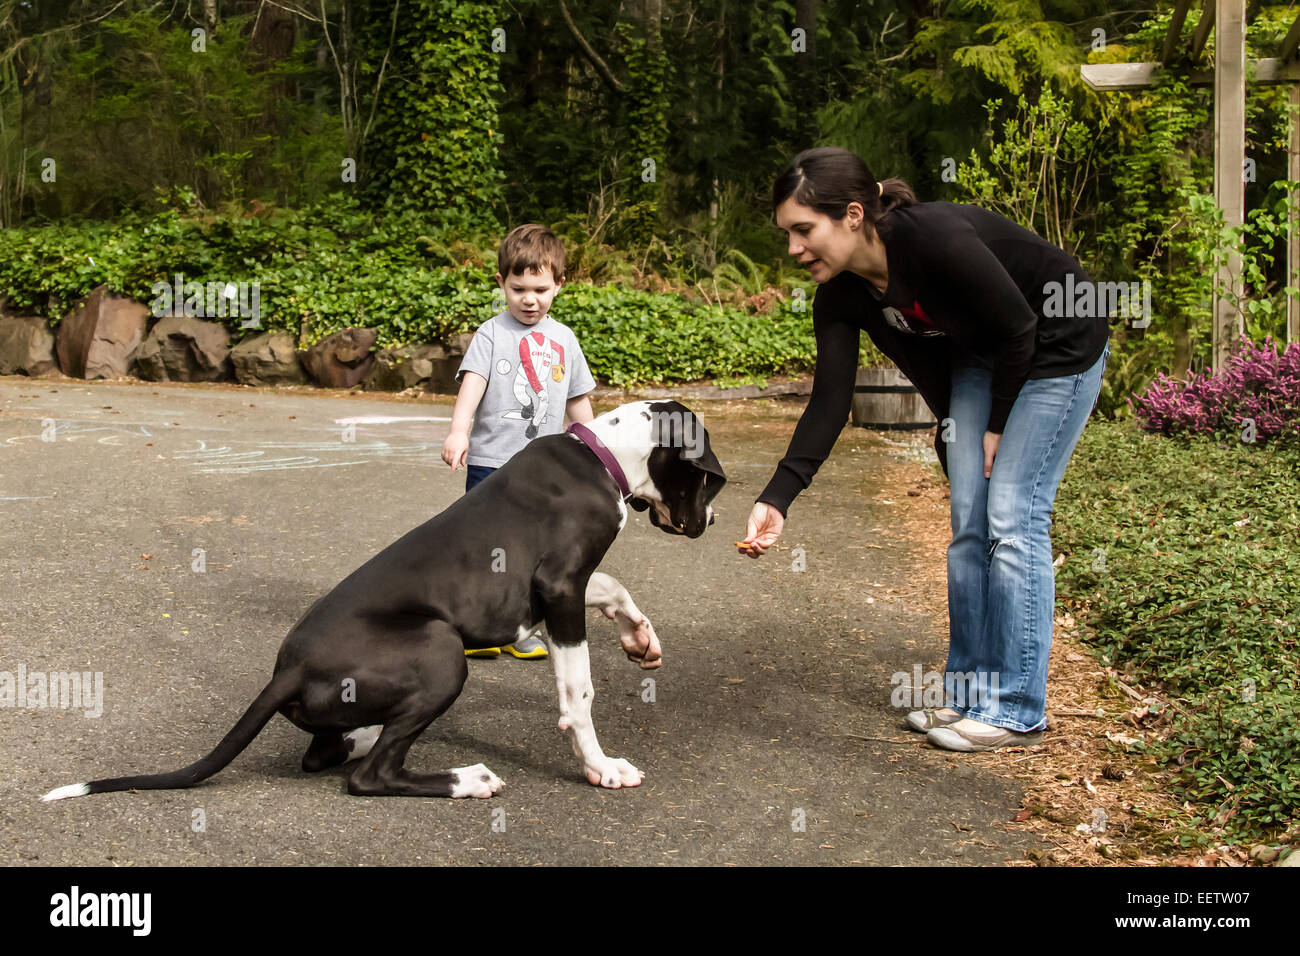 Six month old Great Dane puppy, Athena, being trained to do the 'shake' command, in Issaquah, Washington, - Stock Image